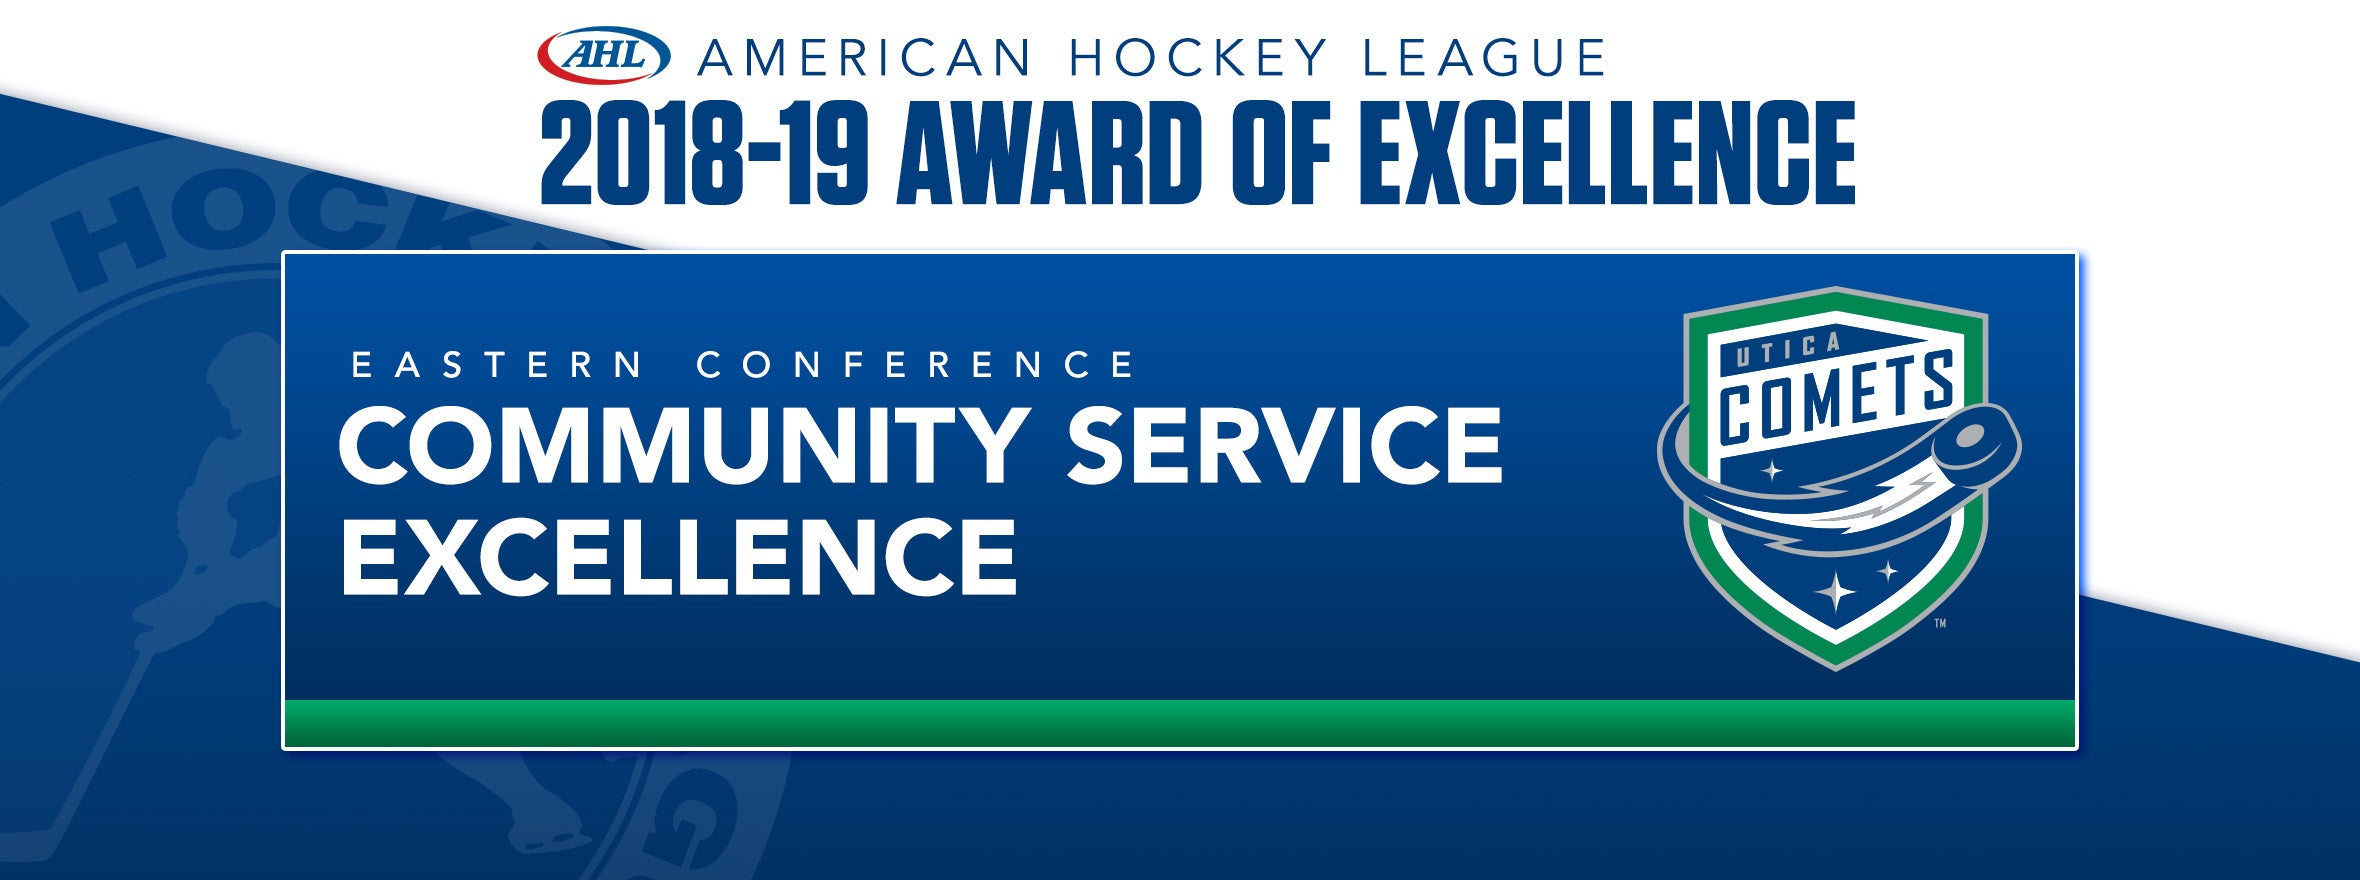 COMETS WIN COMMUNITY SERVICE EXCELLENCE AWARD